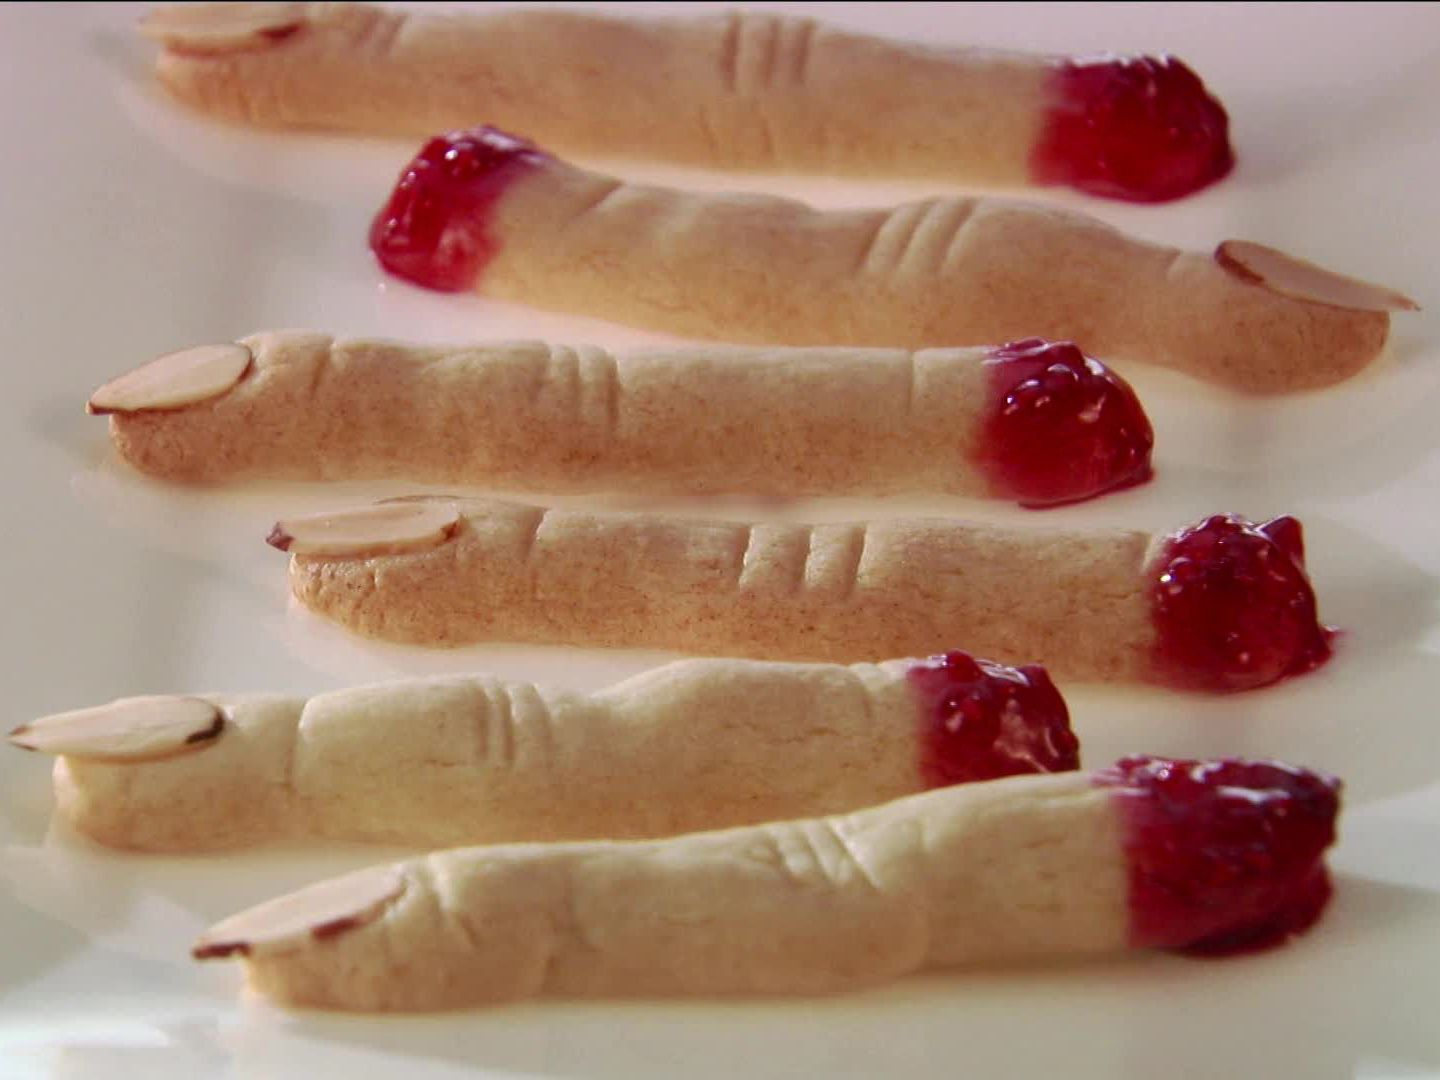 Food network and hgtvs ultimate halloween party witch finger witch finger cookies giada de laurentiis transforms classic ladyfinger cookies into spooky witch fingers by foodnetwork forumfinder Gallery